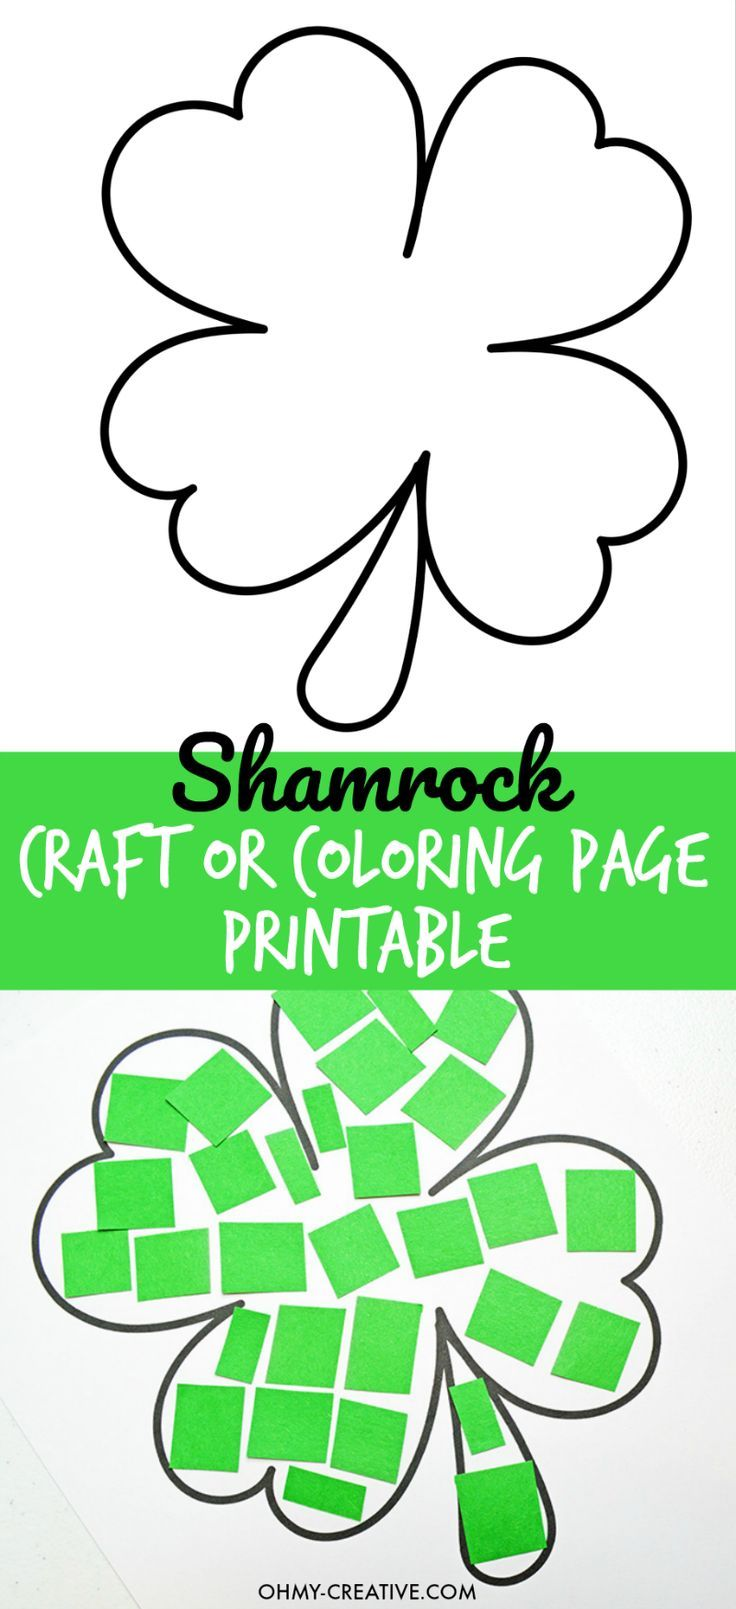 Cut And Paste Shamrock Template or Coloring Page | Shamrock template ...